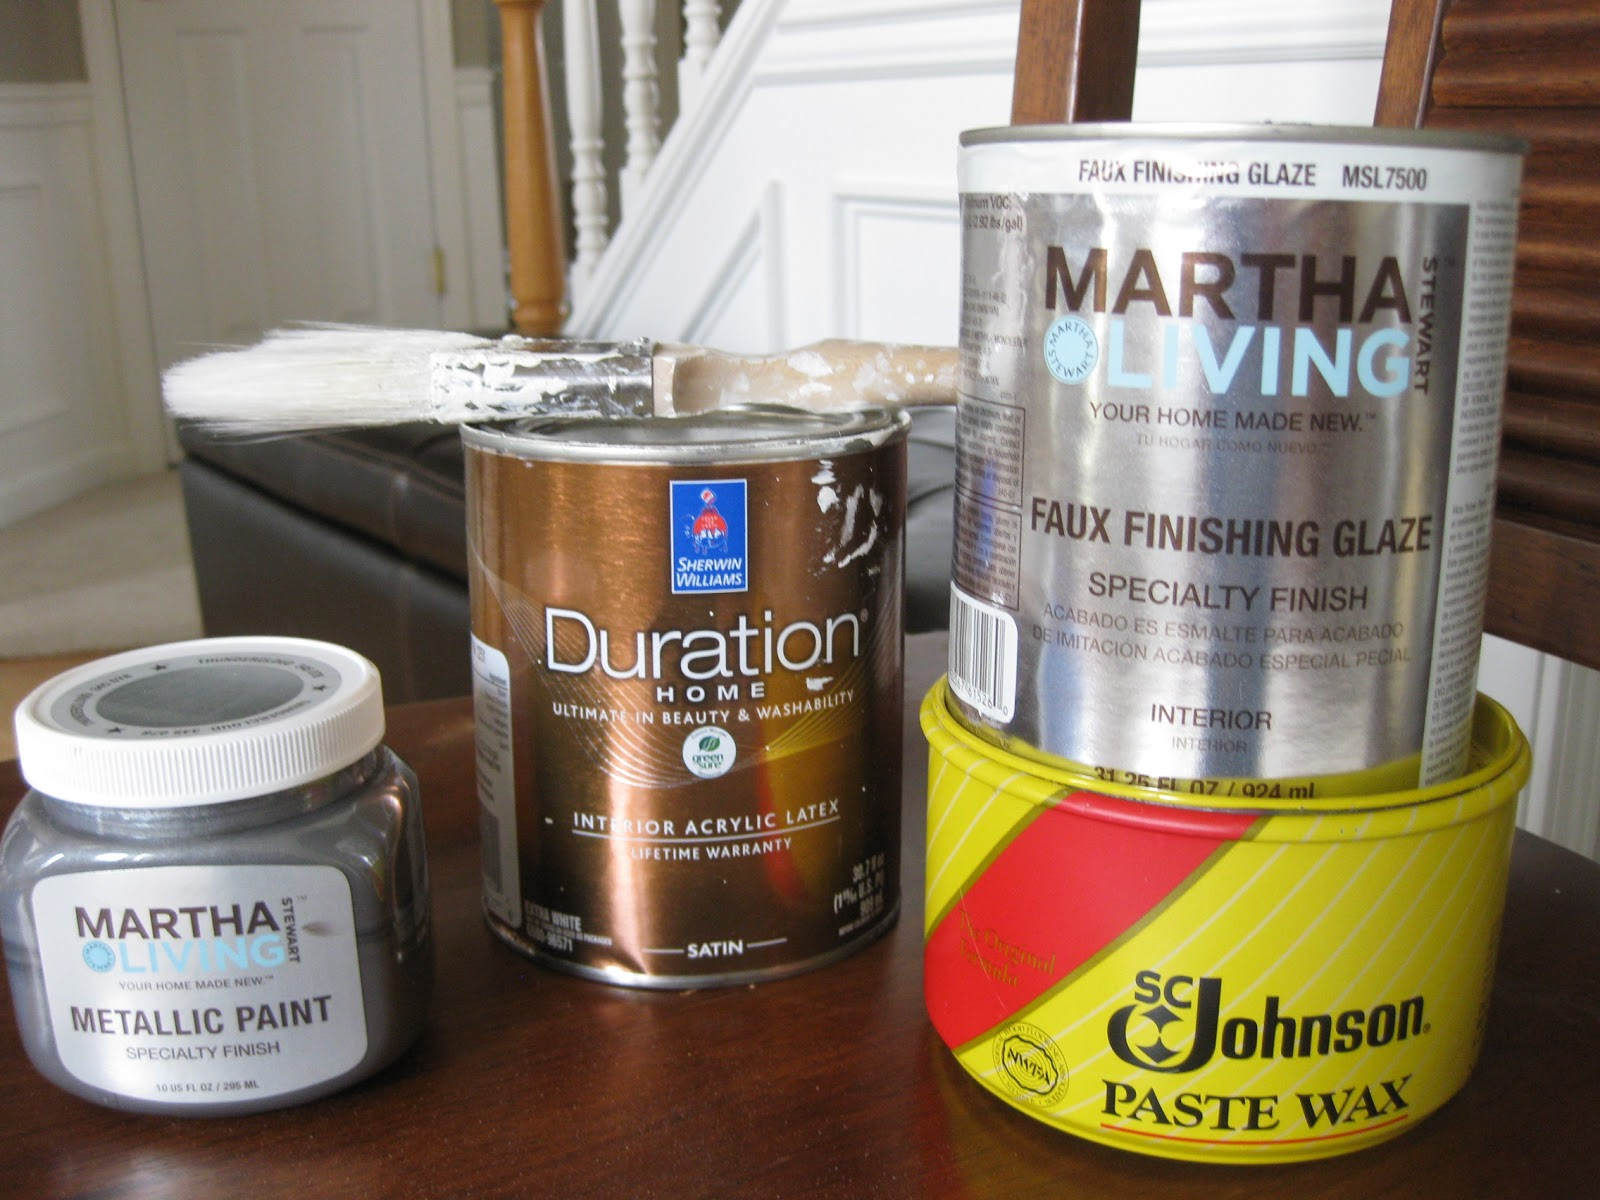 that mommy blog ballard designs knockoff diy martha metallic in thundercloud duration home paint from sw in creamy martha faux finishing glaze and johnson paste wax